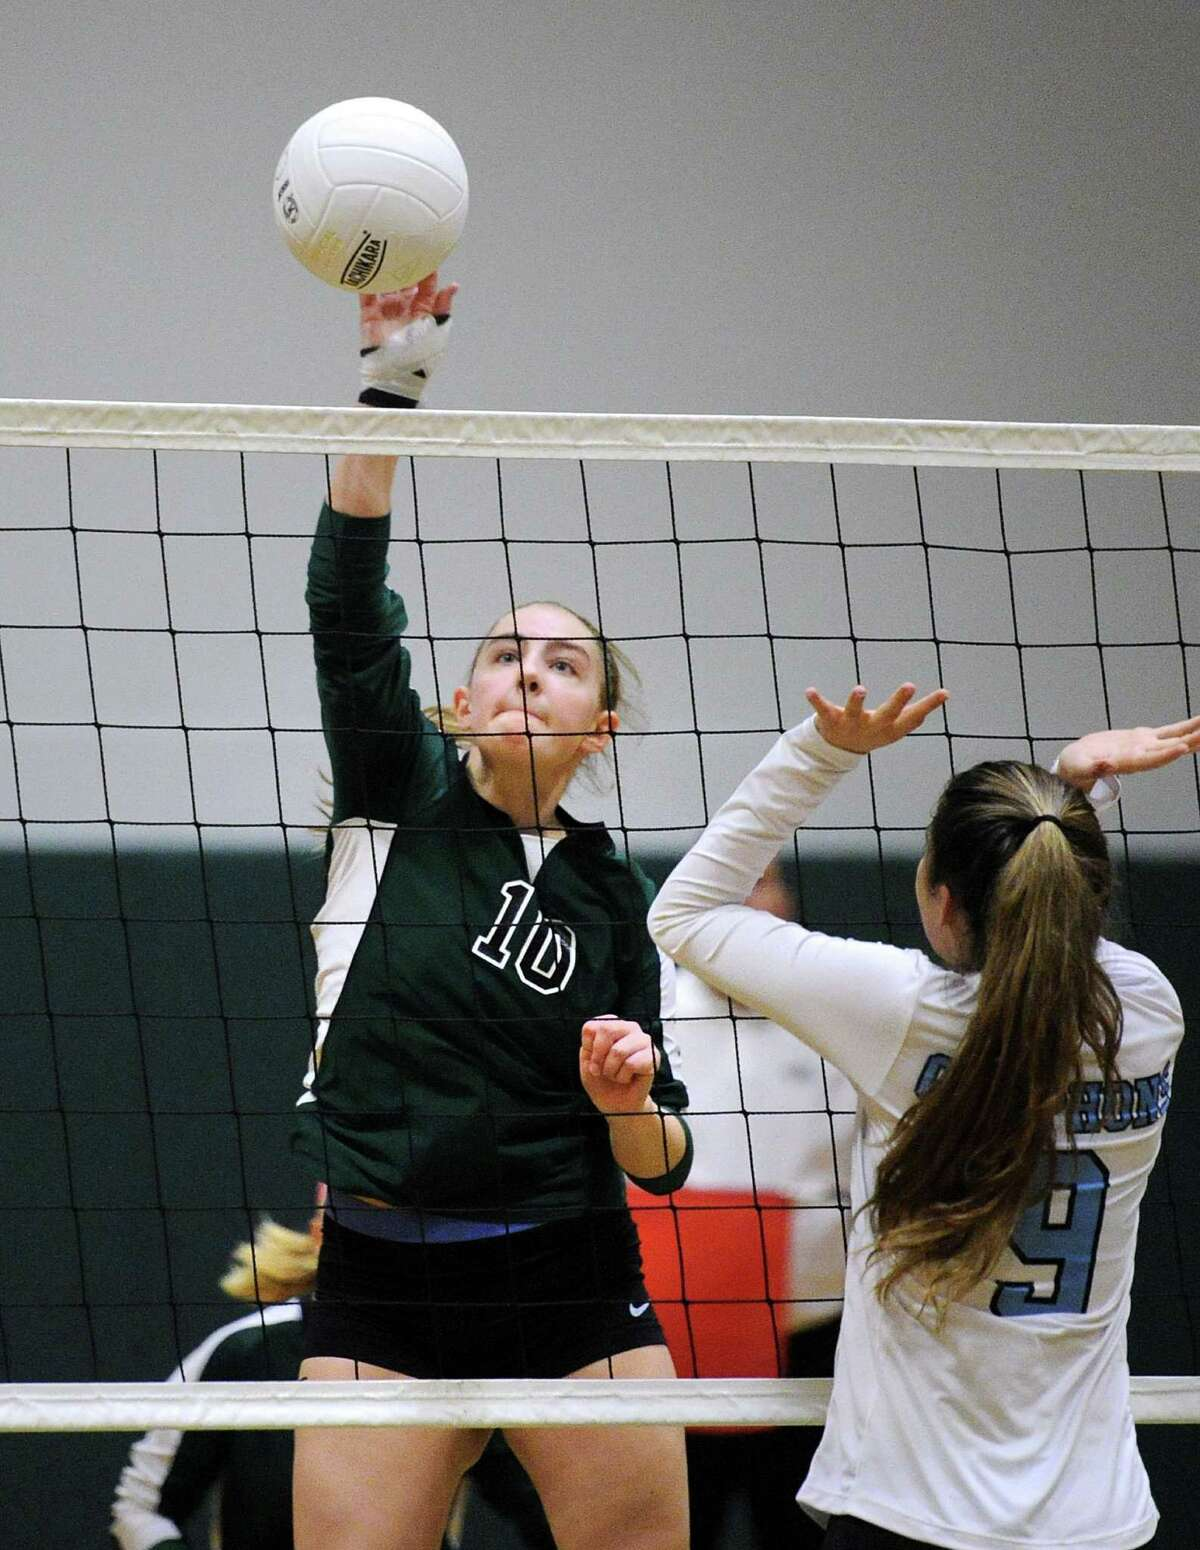 At left, Katie Kablack (10) of Sacred Heart spikes the ball as Holy Child's Caitlin Kaplan (9) defends during the girls high school FAA semi-final volleyball playoff match between Sacred Heart Greenwich and School of the Holy Child at Sacred Heart in Greenwich, Conn., Wednesday, Nov. 9. 2016. Sacred Heart beat Holy Child 3-0 to advance to the final.